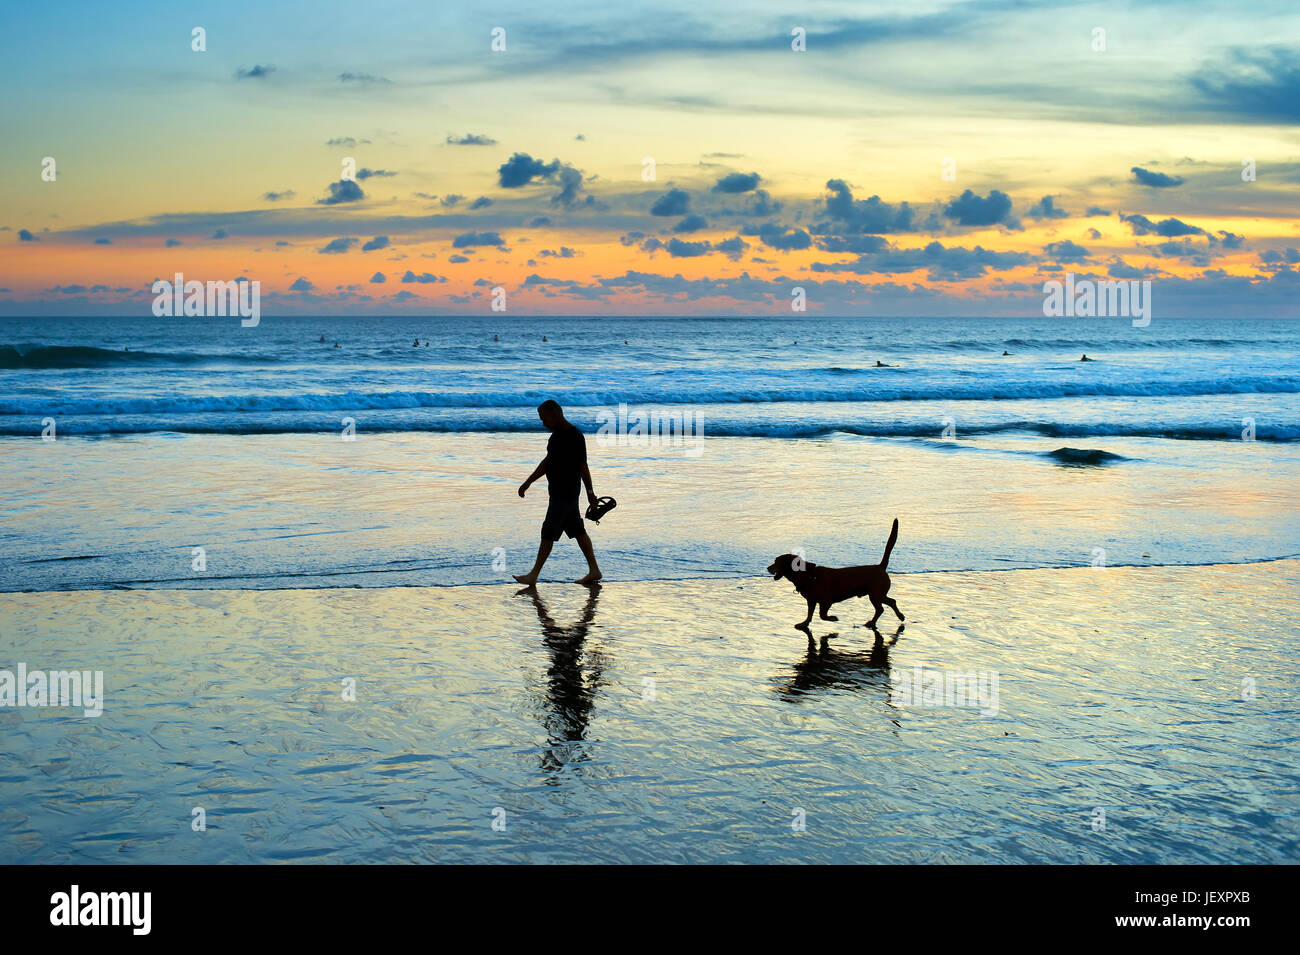 Silhouette of a man and dog walking on a beach at sunset. Bali island, Indonesia Stock Photo